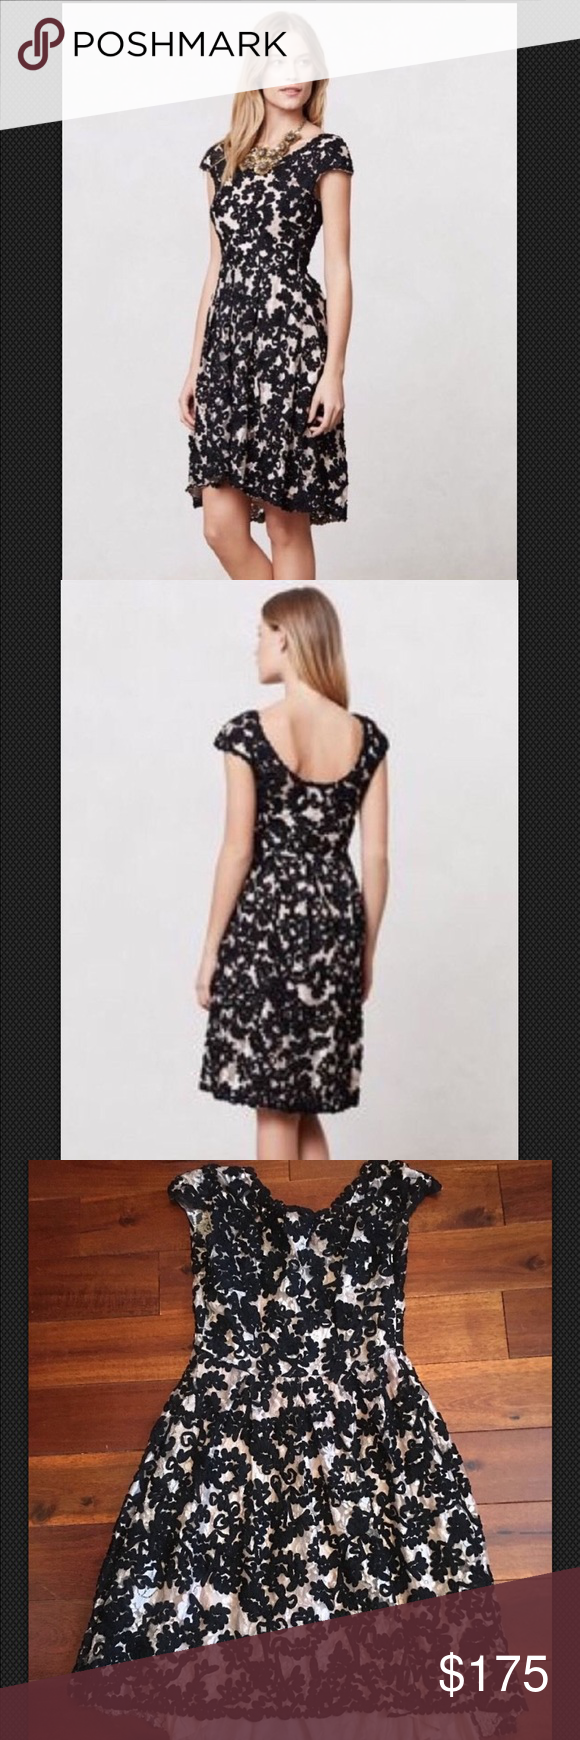 Anthropologie Yoana Baraschi Jardim Lace Dress 10 Anthropologie Jardim Lace dress by Yoana Baraschi size 10. This is completely sold out and gorgeous. ❌No trades! And no low offers please!❌ Anthropologie Dresses